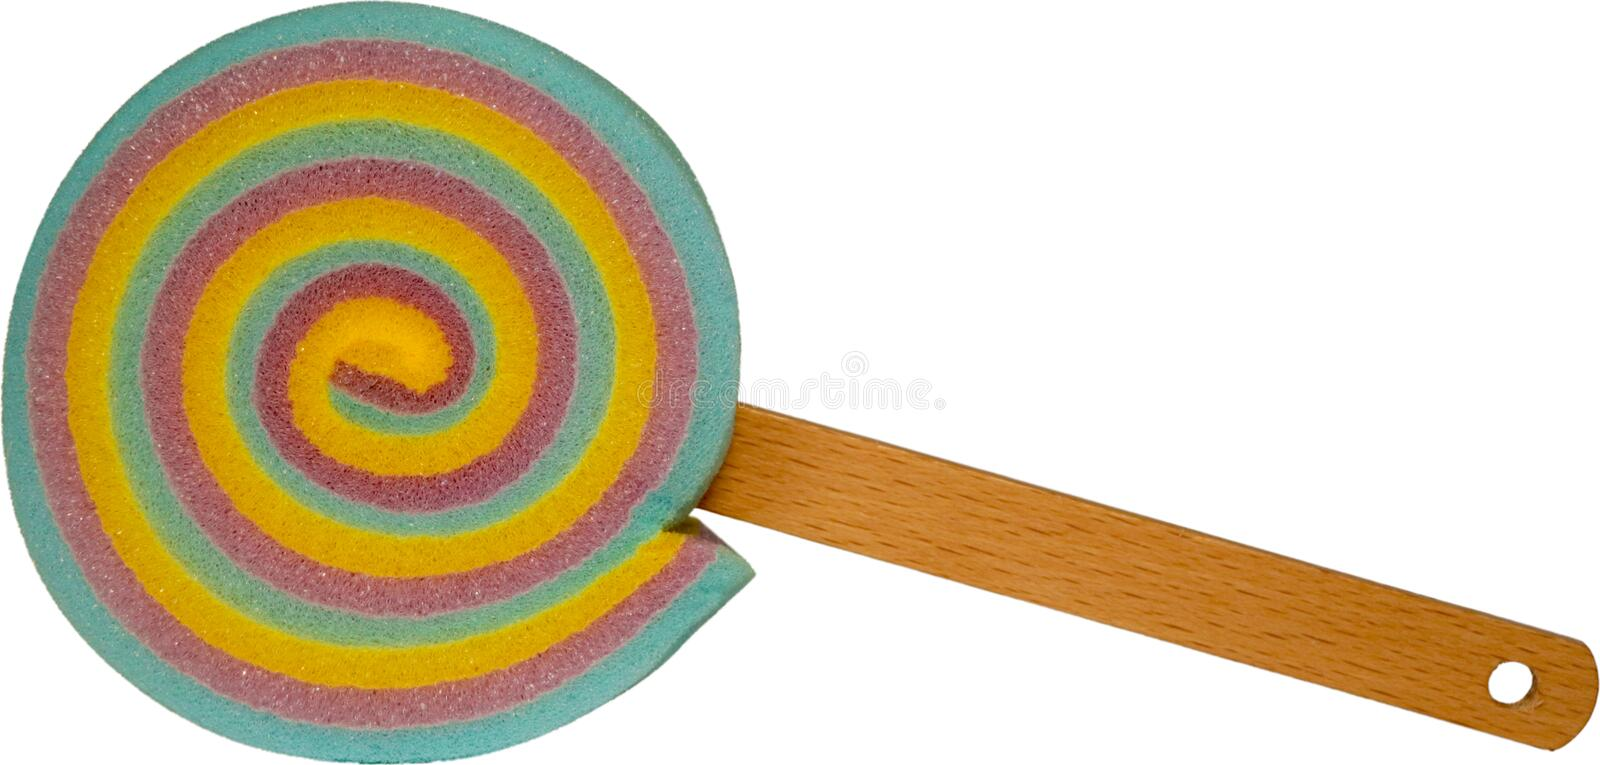 Colorful Lollipop/ Cake Sponge with Wooden Stick/ Handle -Mixed stock photo